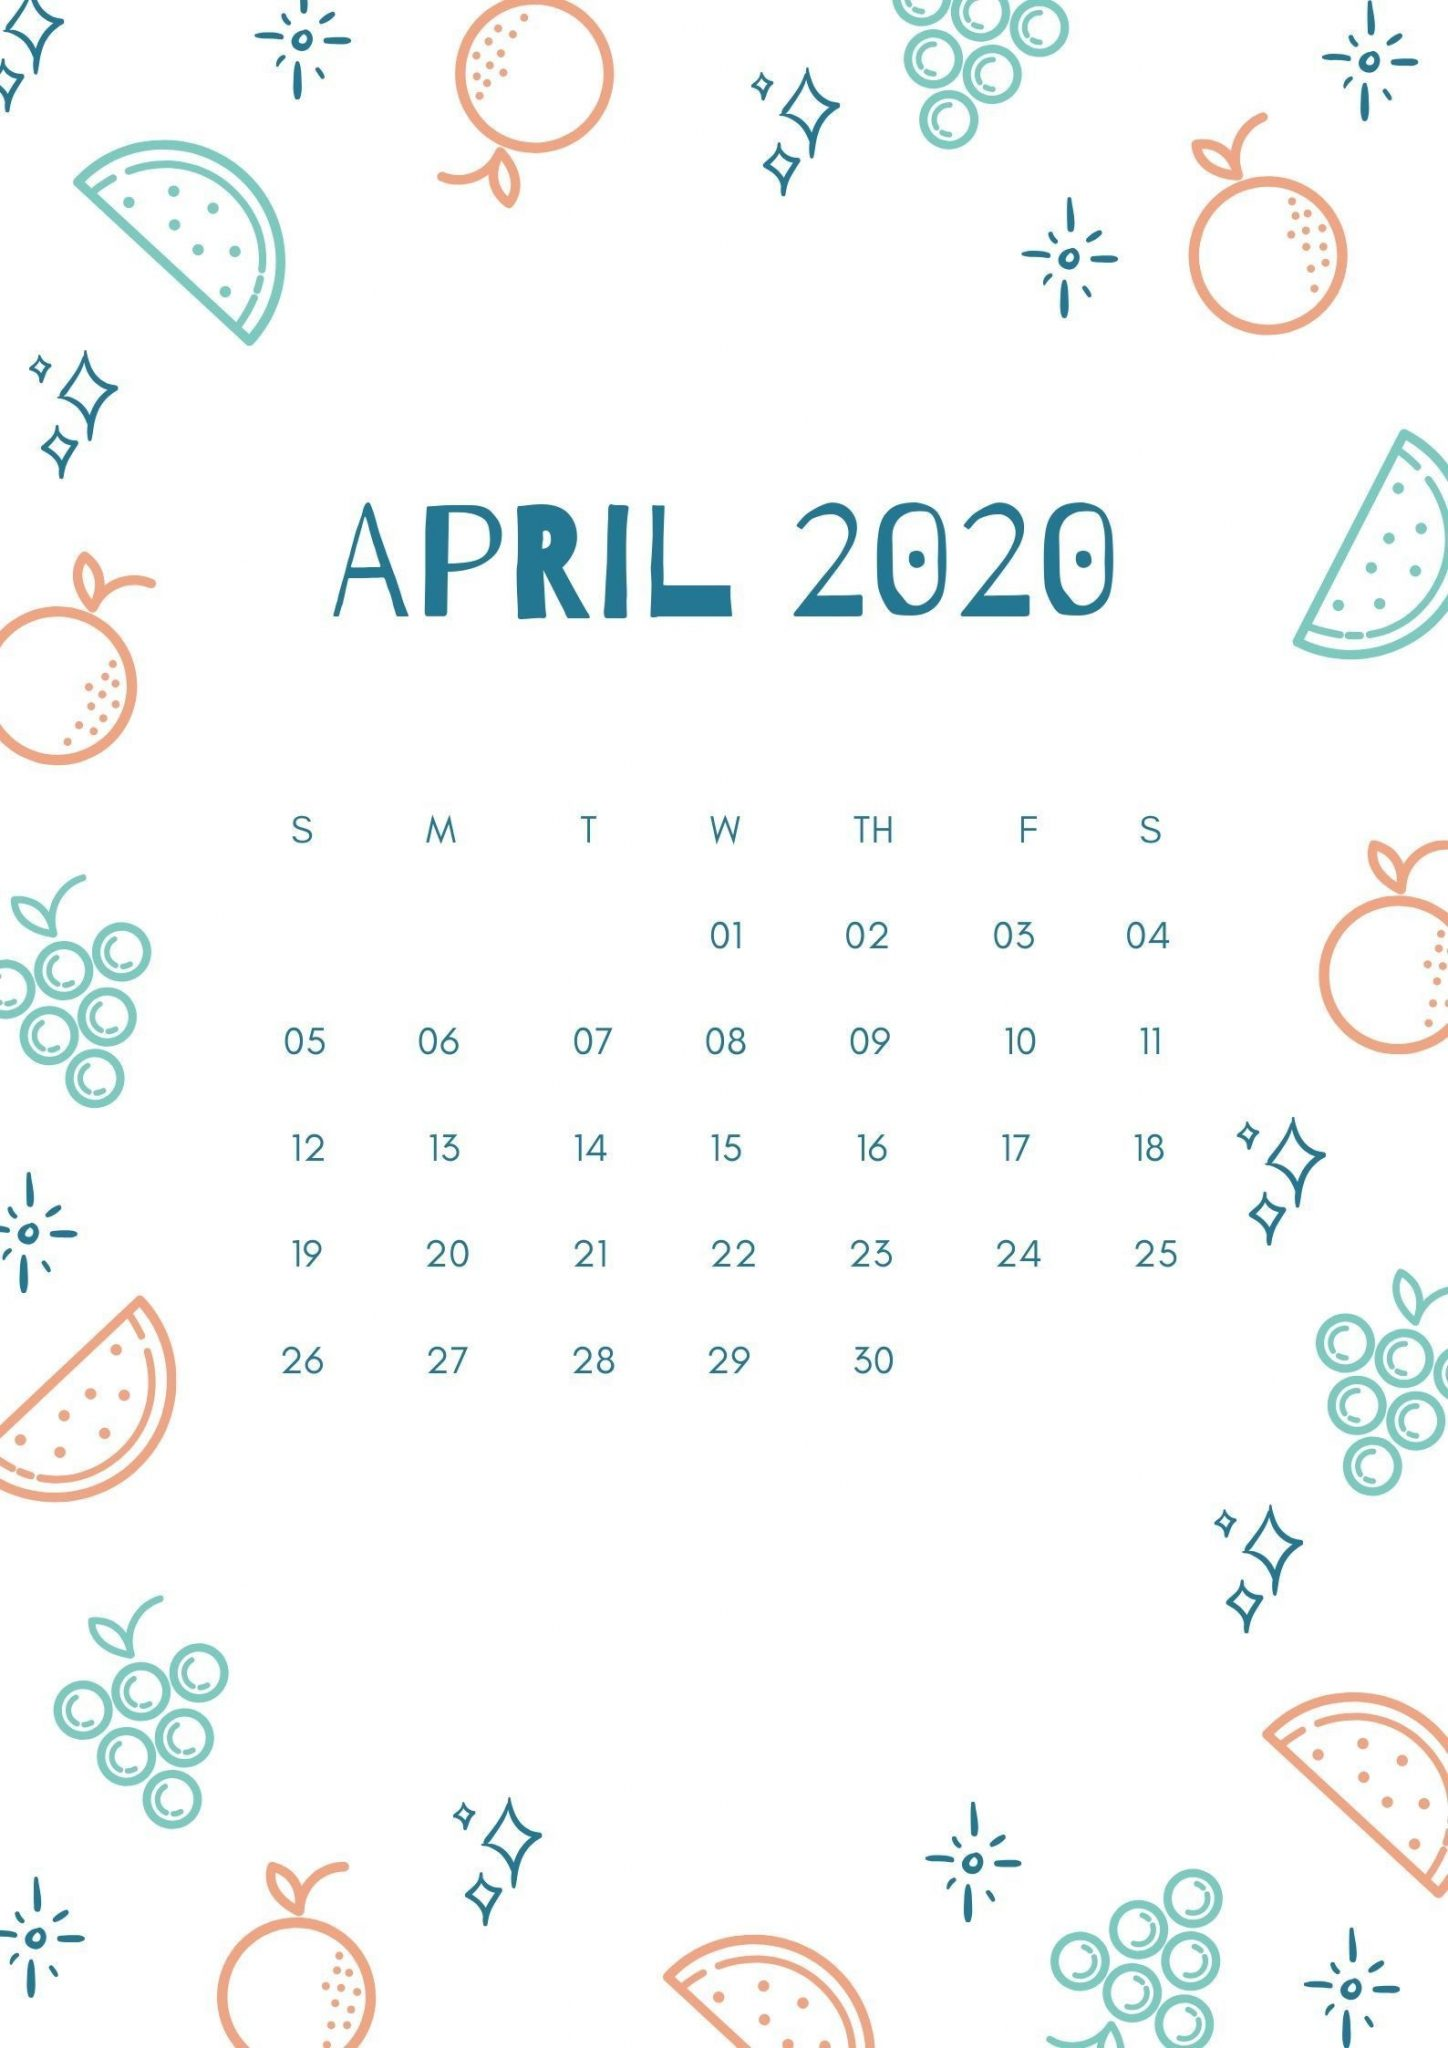 April 2020 Calendar iPhone Wallpaper